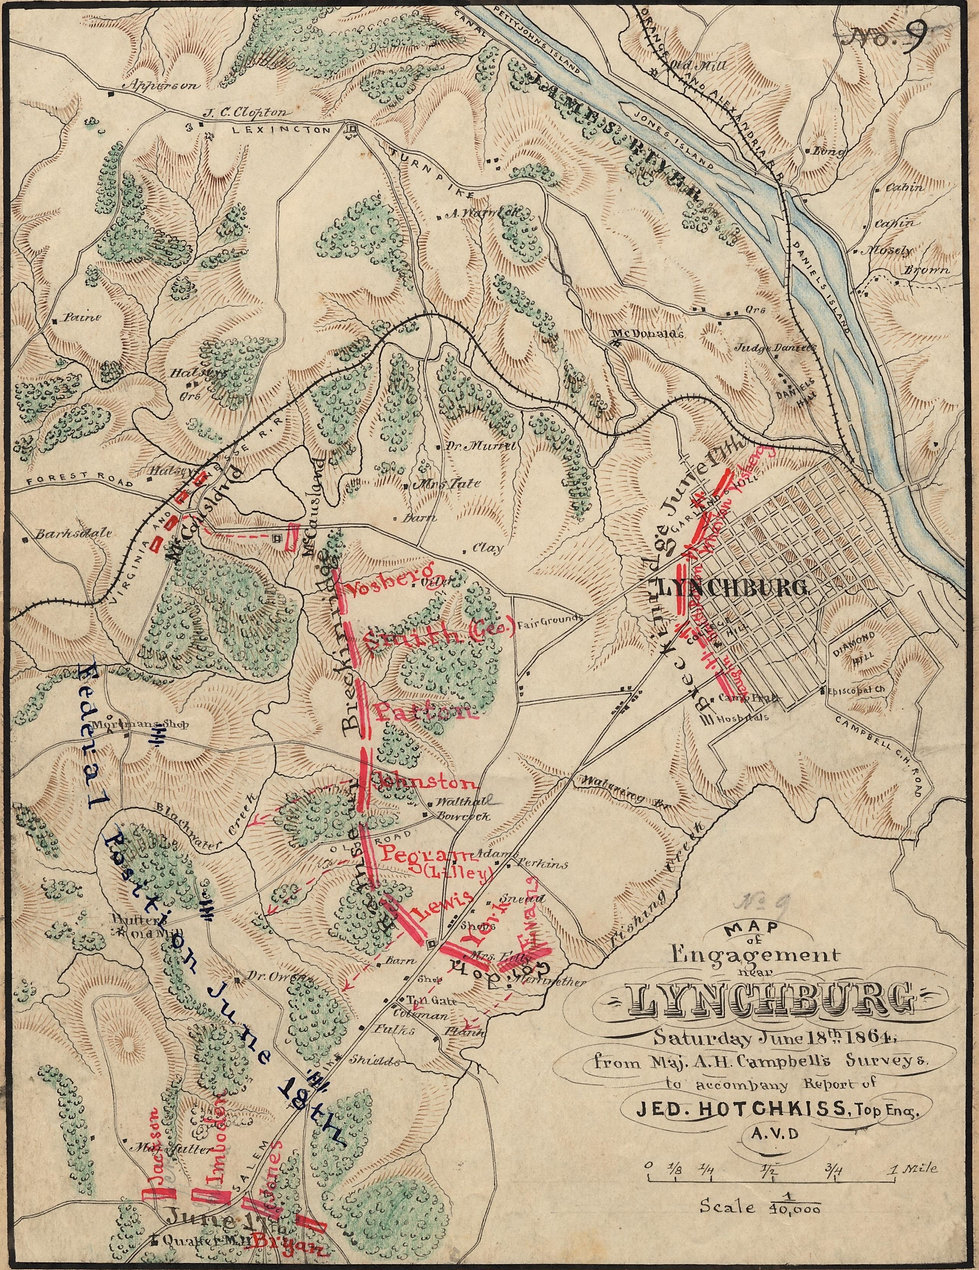 Hotchkiss Lynchburg Map cropped.jpg